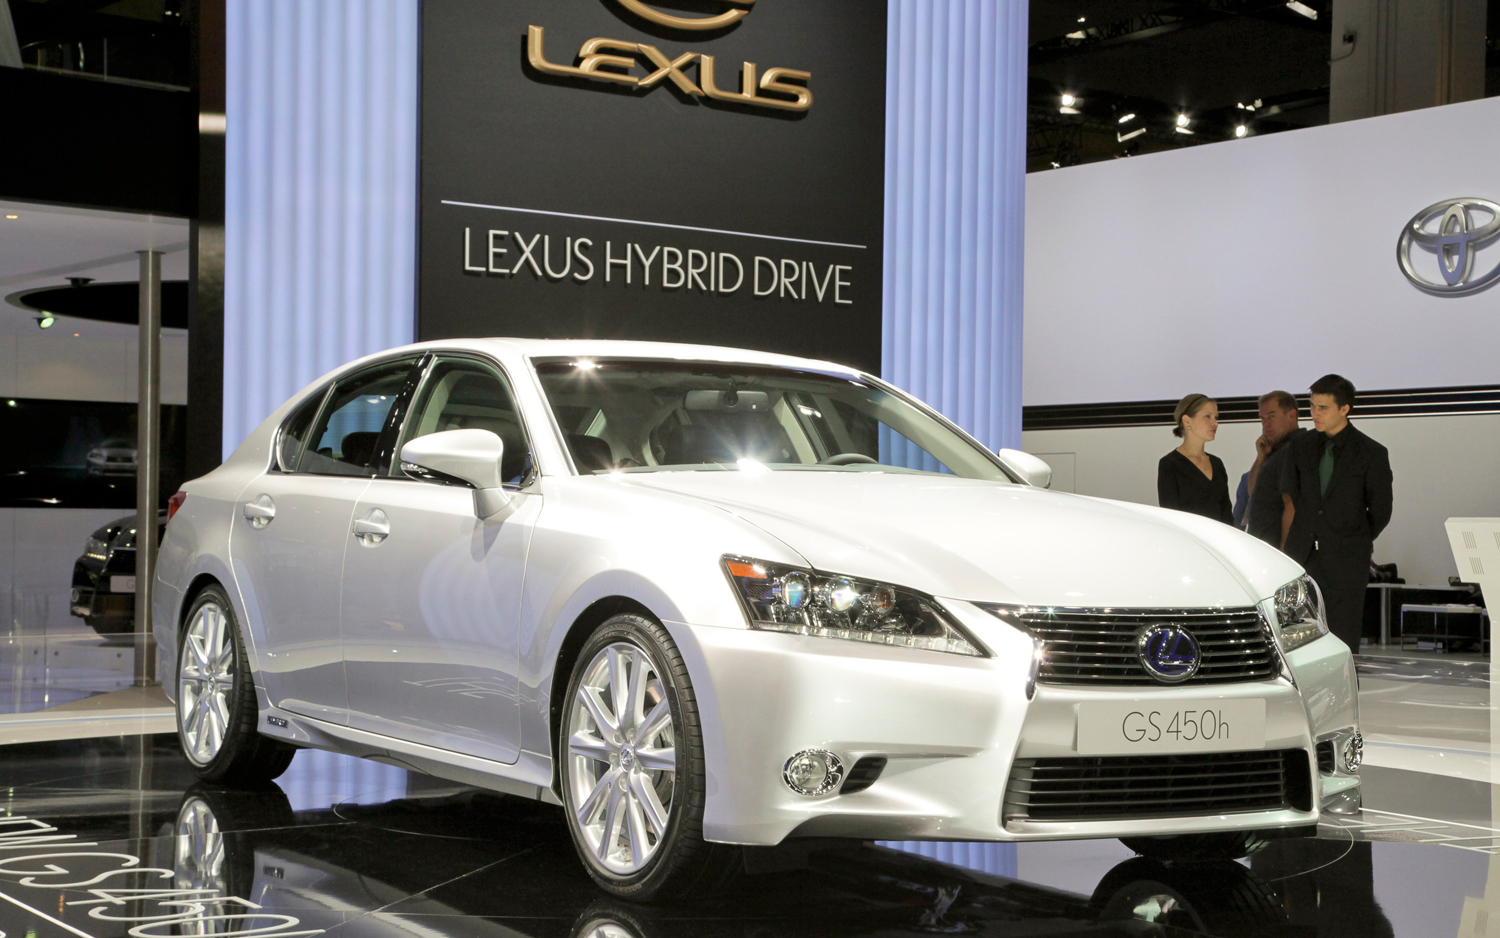 https://enthusiastnetwork.s3.amazonaws.com/uploads/sites/5/2011/09/Lexus-GS450h-front-three-quarterse.jpg?impolicy=entryimage